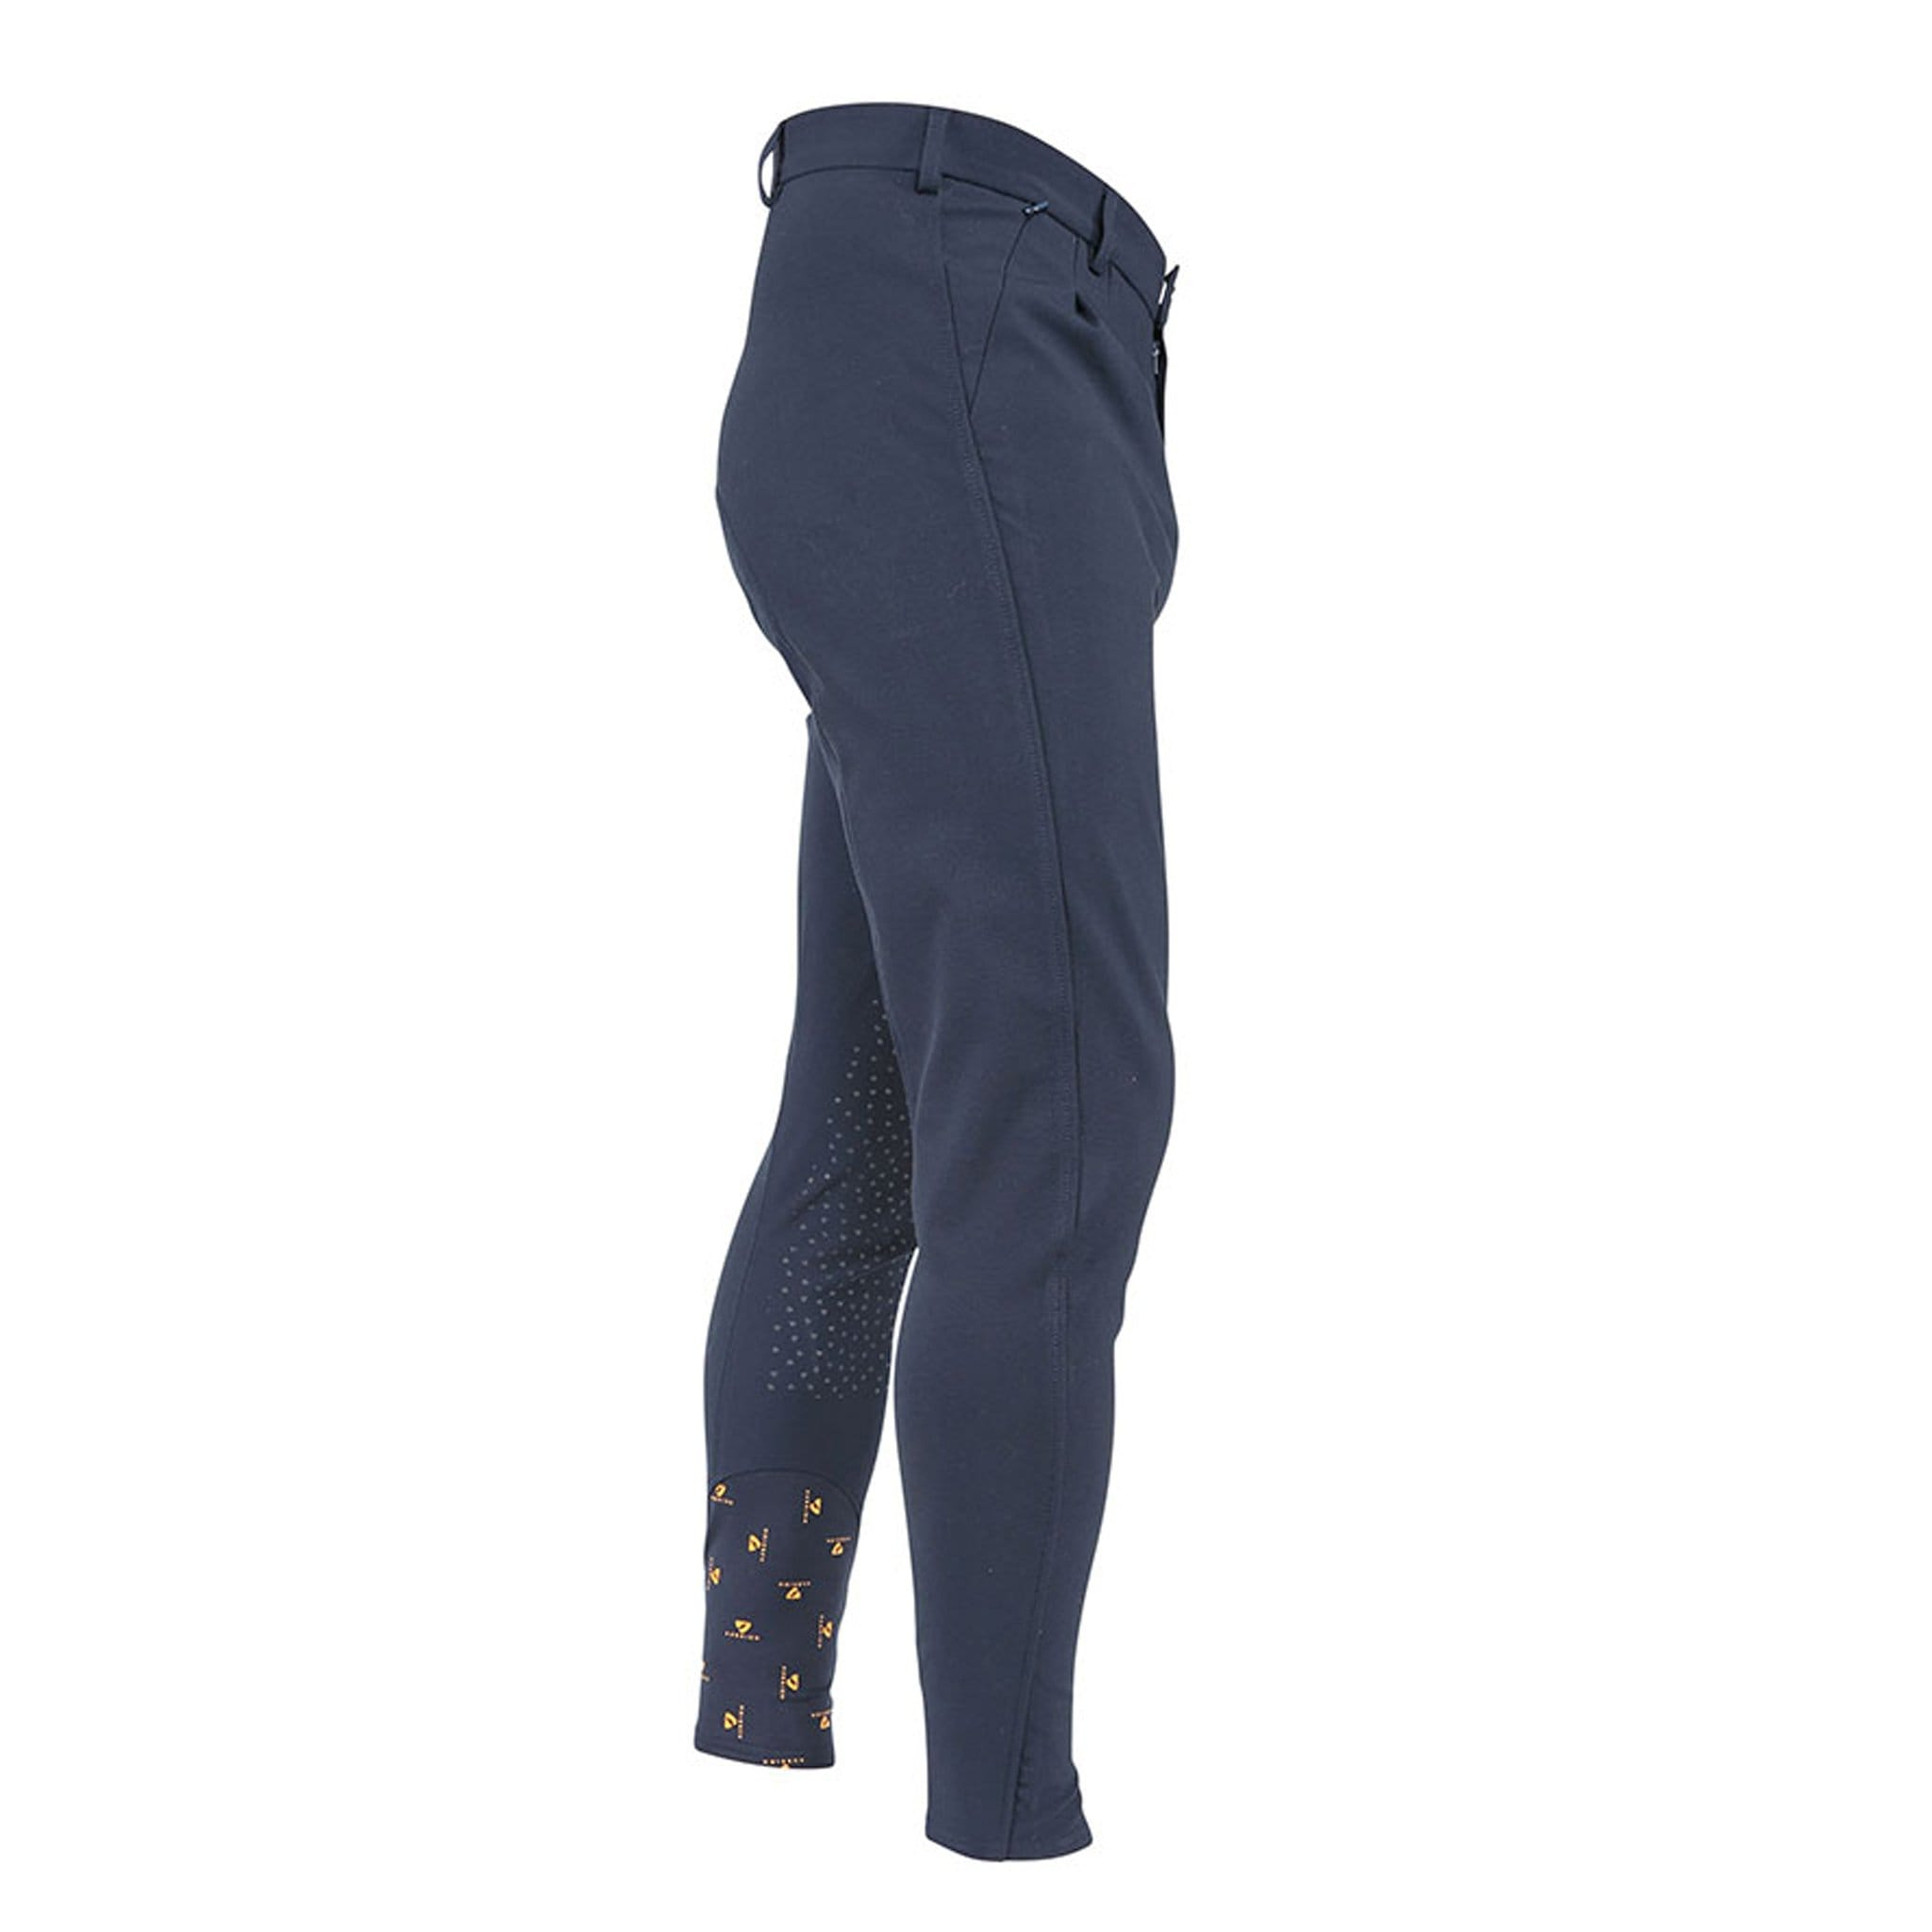 Shires Men's Aubrion Walton Silicone Knee Patch Breeches Navy 8143.